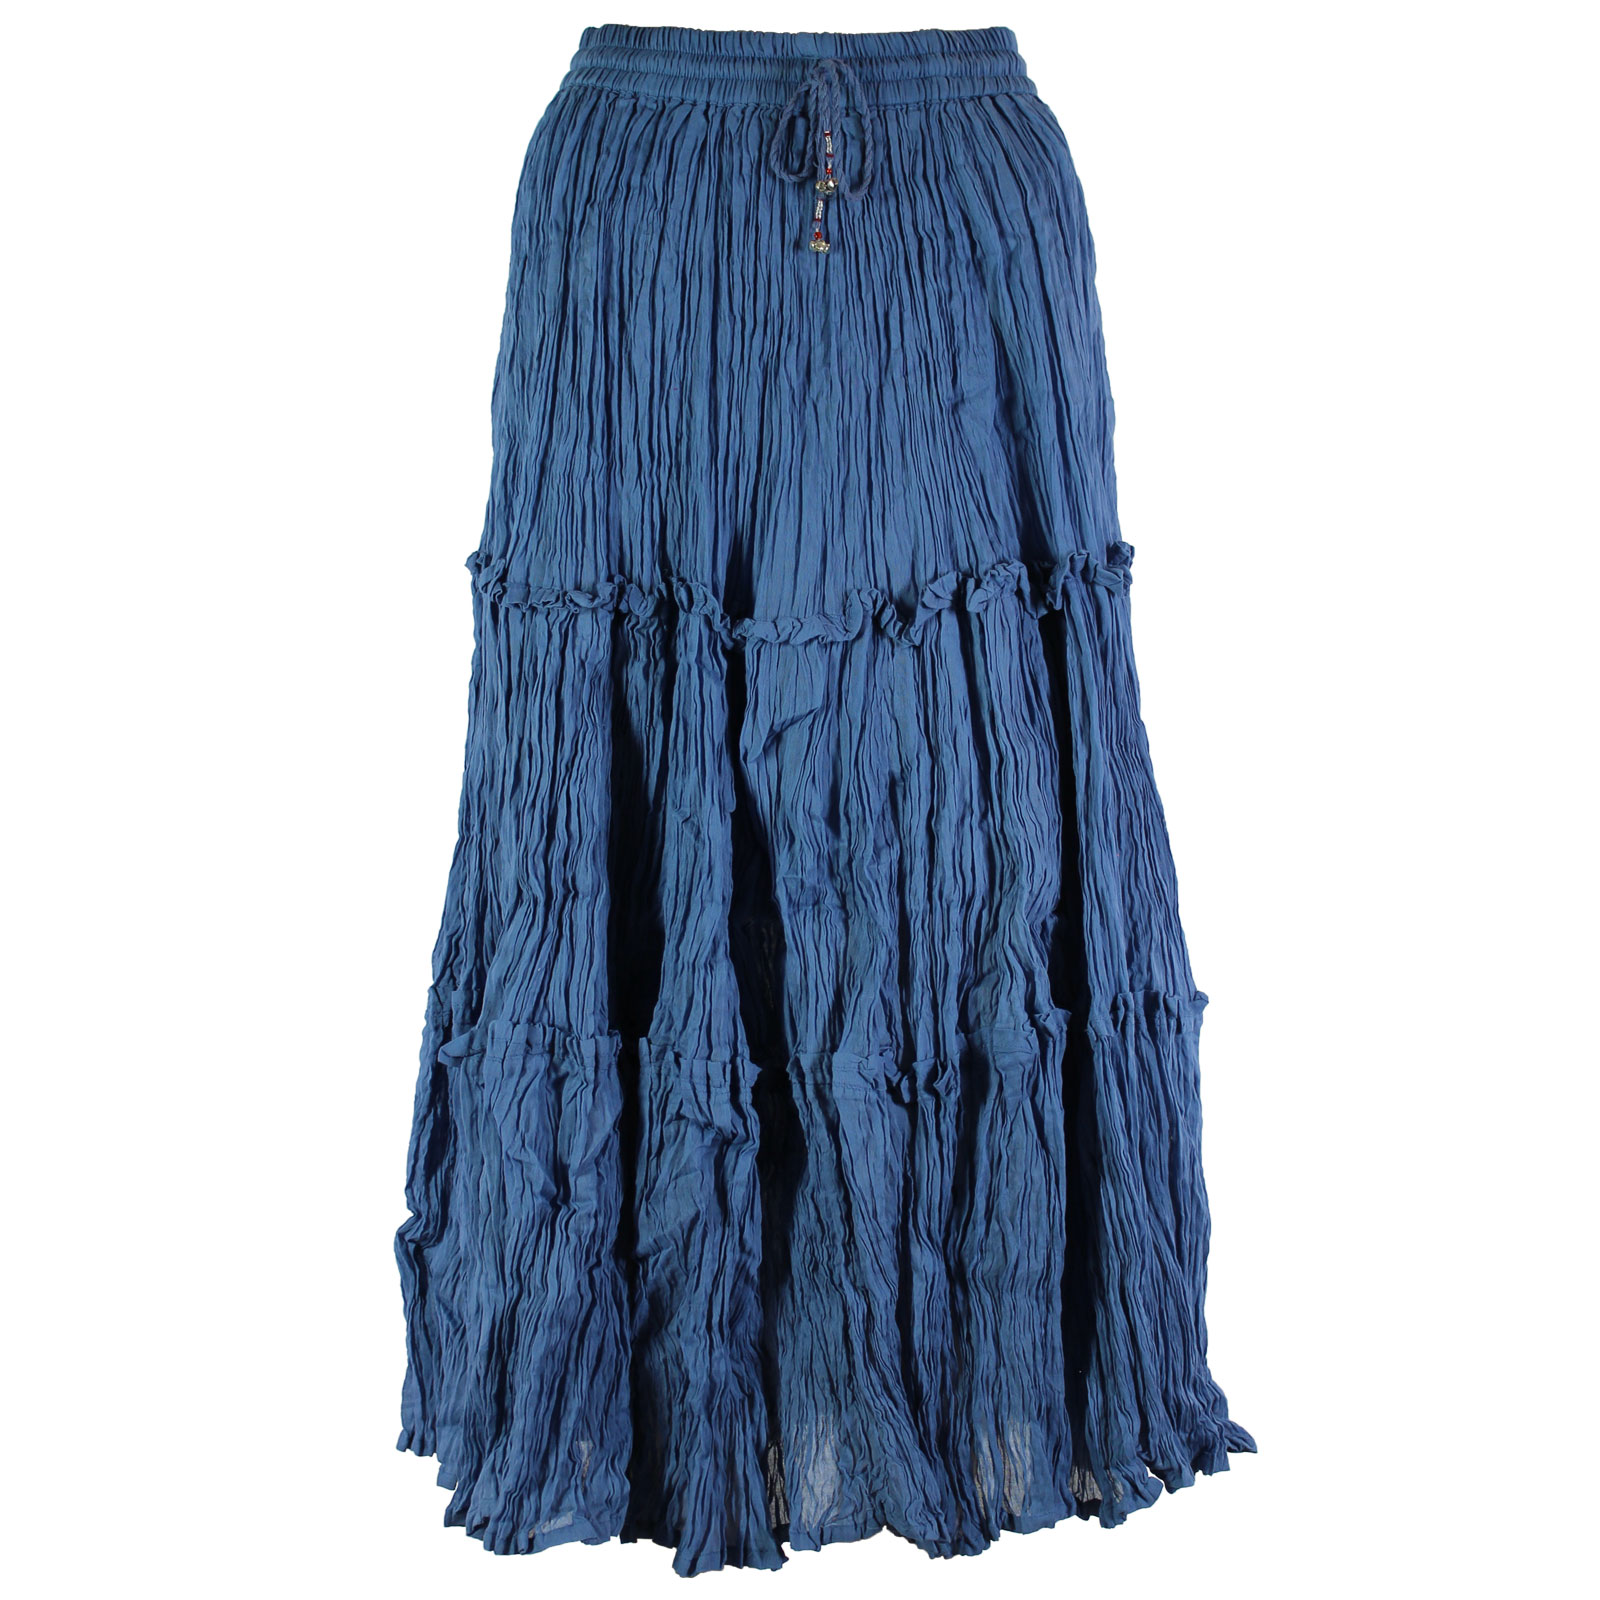 Wholesale Skirts - Cotton Three Tier Broomstick 500 & 529 Ankle Length - Denim - One Size (S-XL)